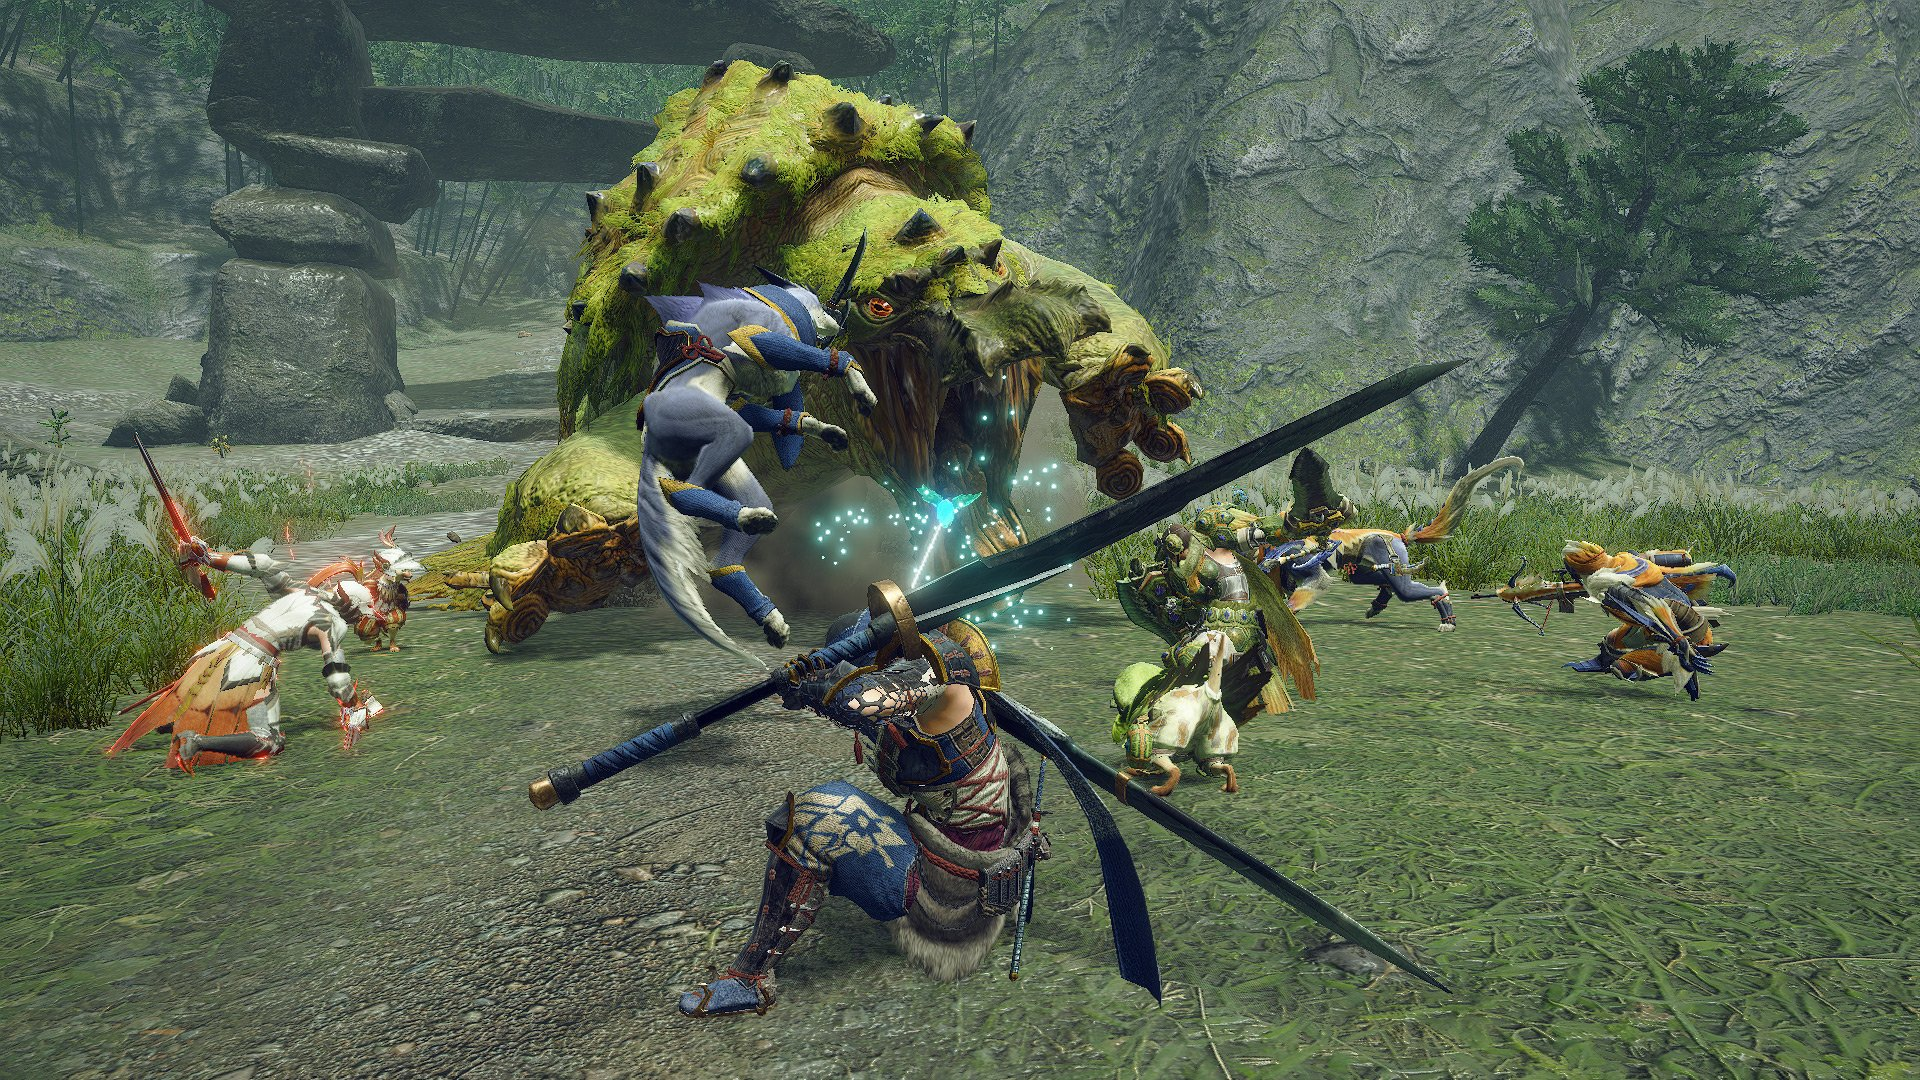 Monster Hunter Rise has separate solo and co-op quests, and cutscenes can be skipped screenshot